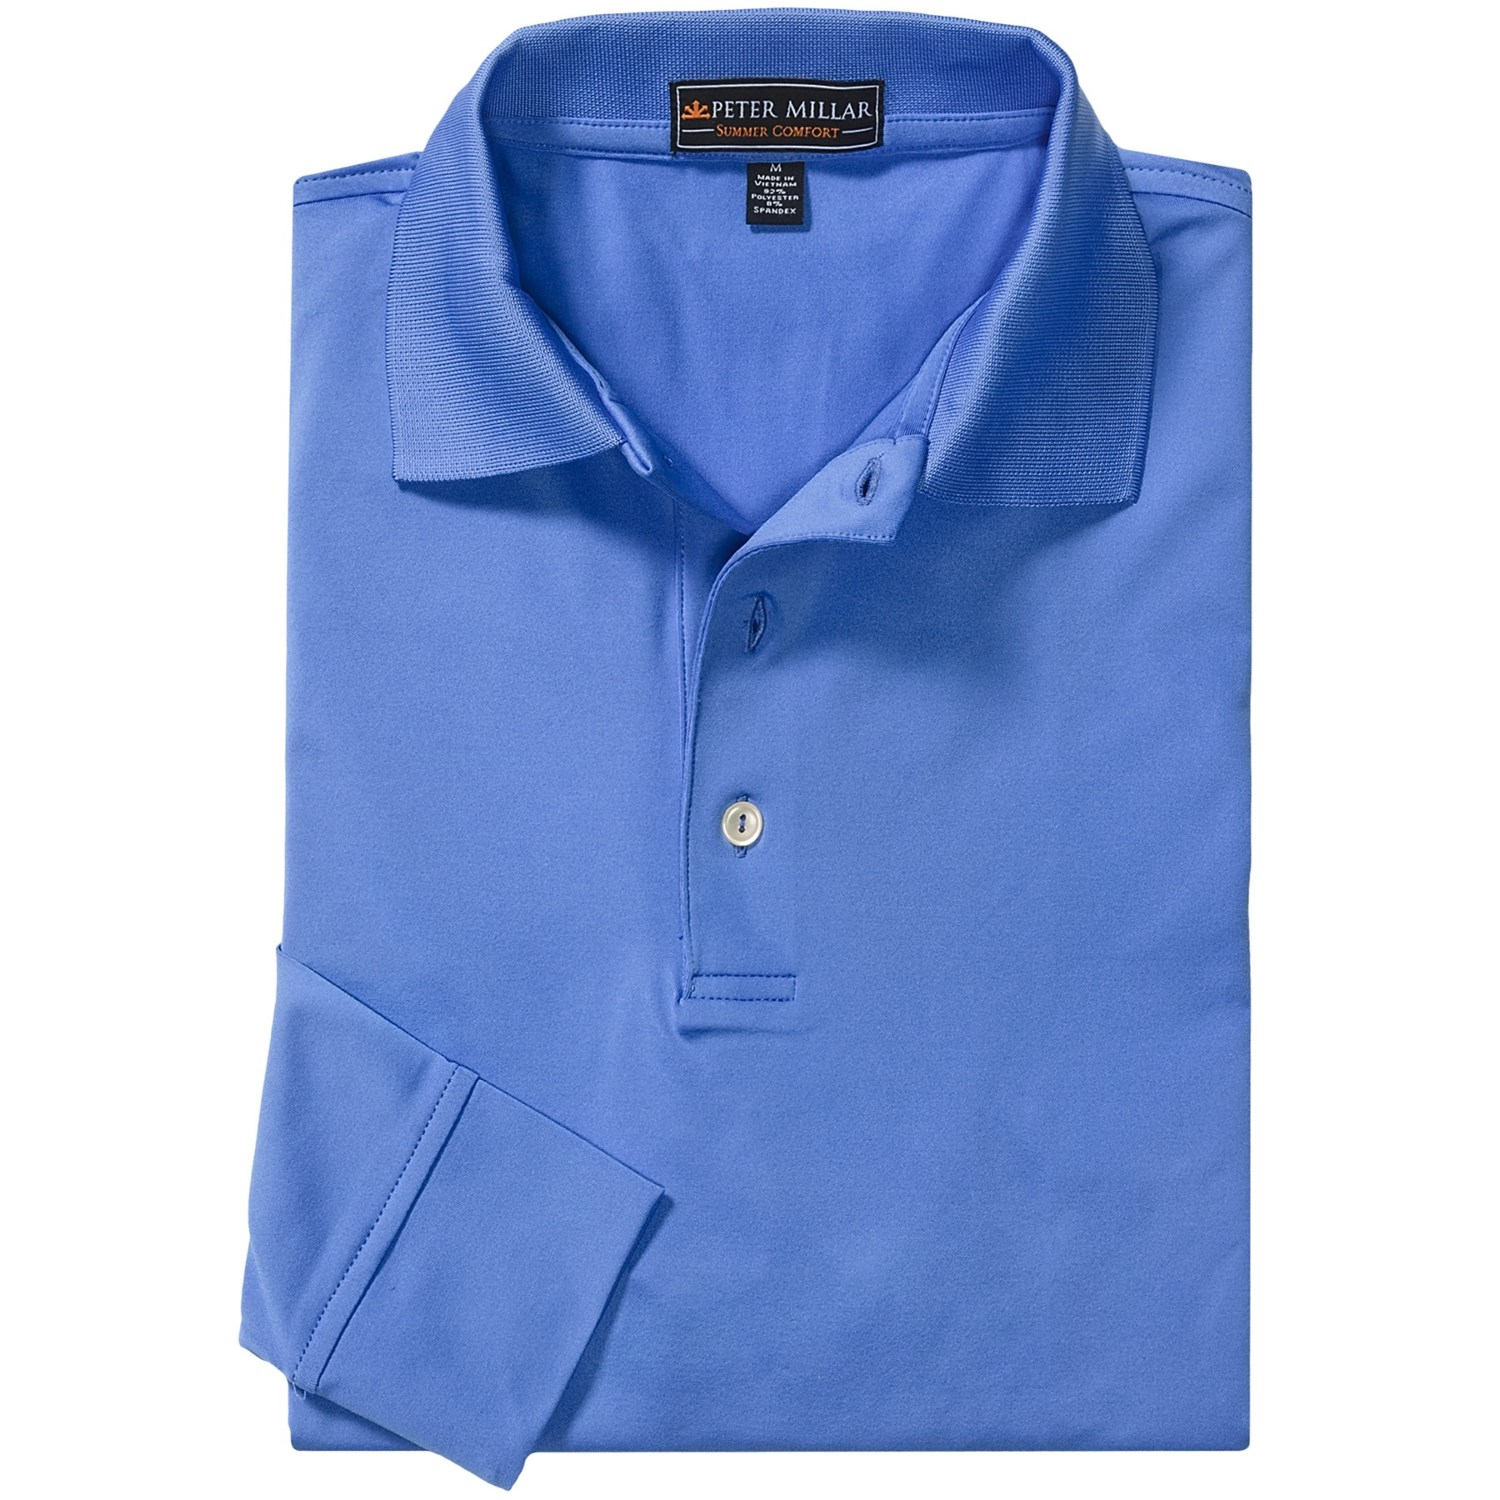 peter millar signature summer comfort polo shirt for men